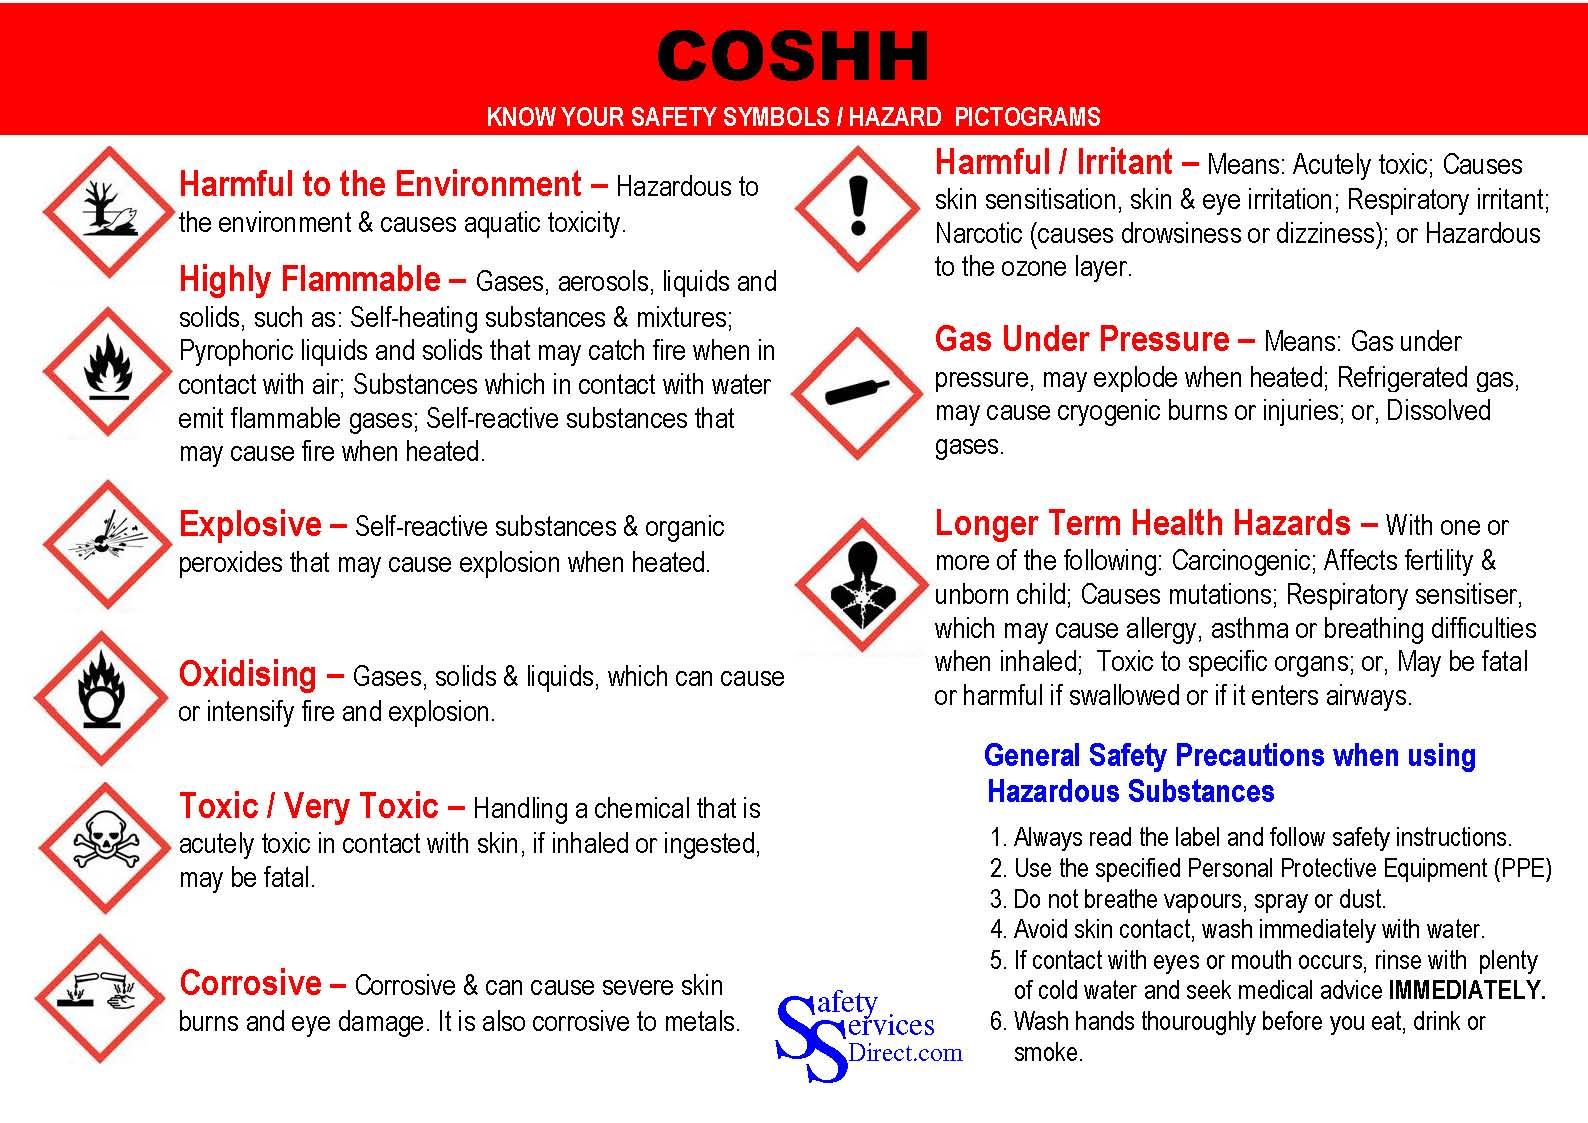 Coshh Posters Hazardous Substances Posters